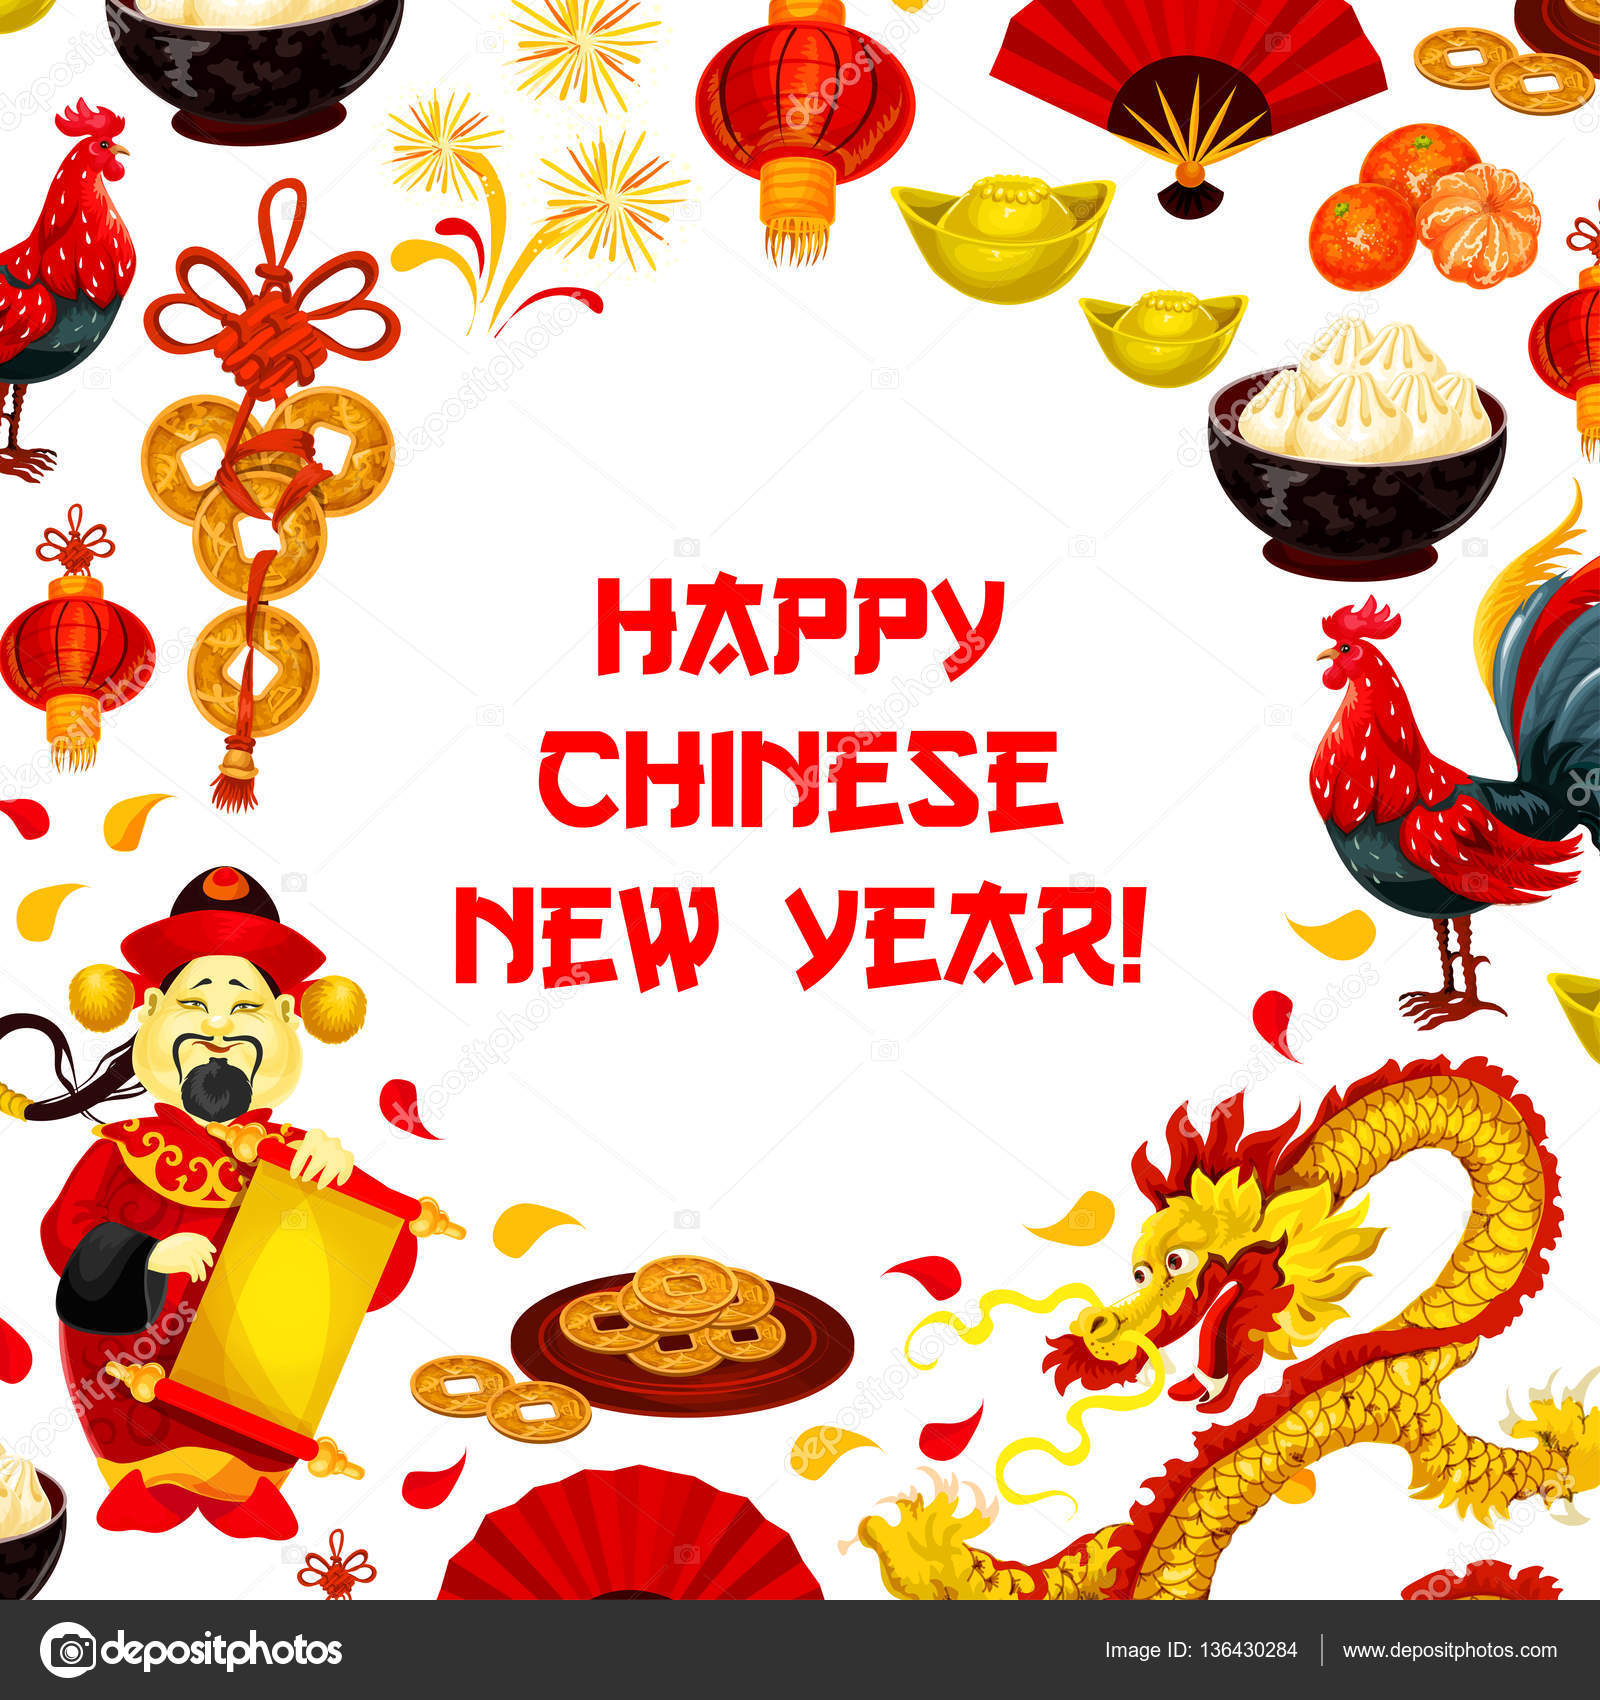 Chinese new year poster for greeting card design stock vector chinese new year poster for greeting card design stock vector m4hsunfo